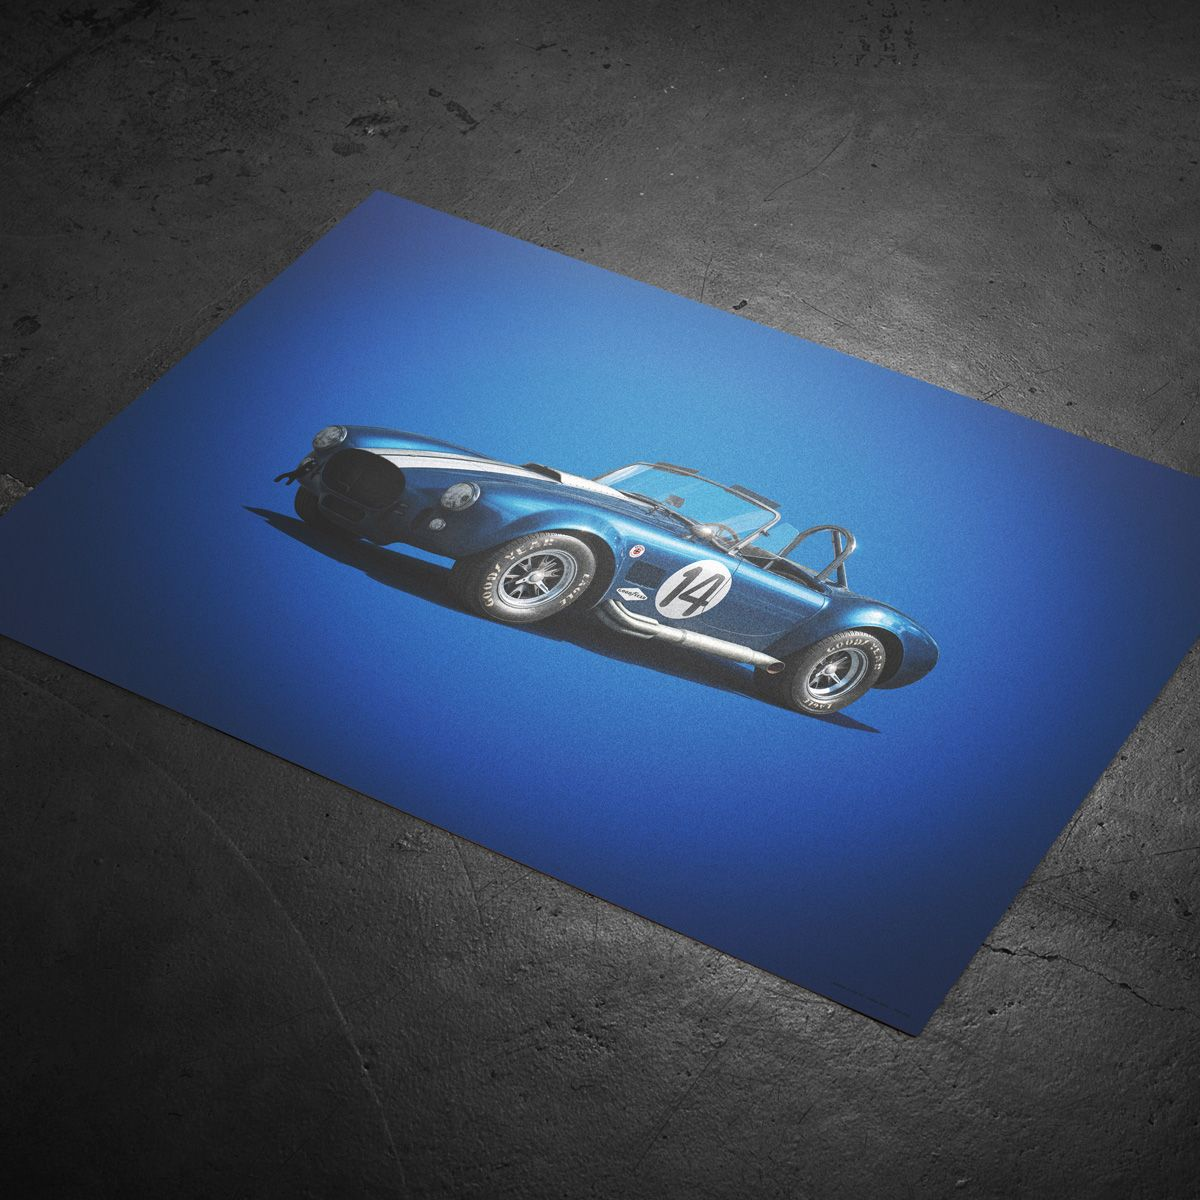 New In The Shop: Ferrari, Shelby, And McLaren Posters From